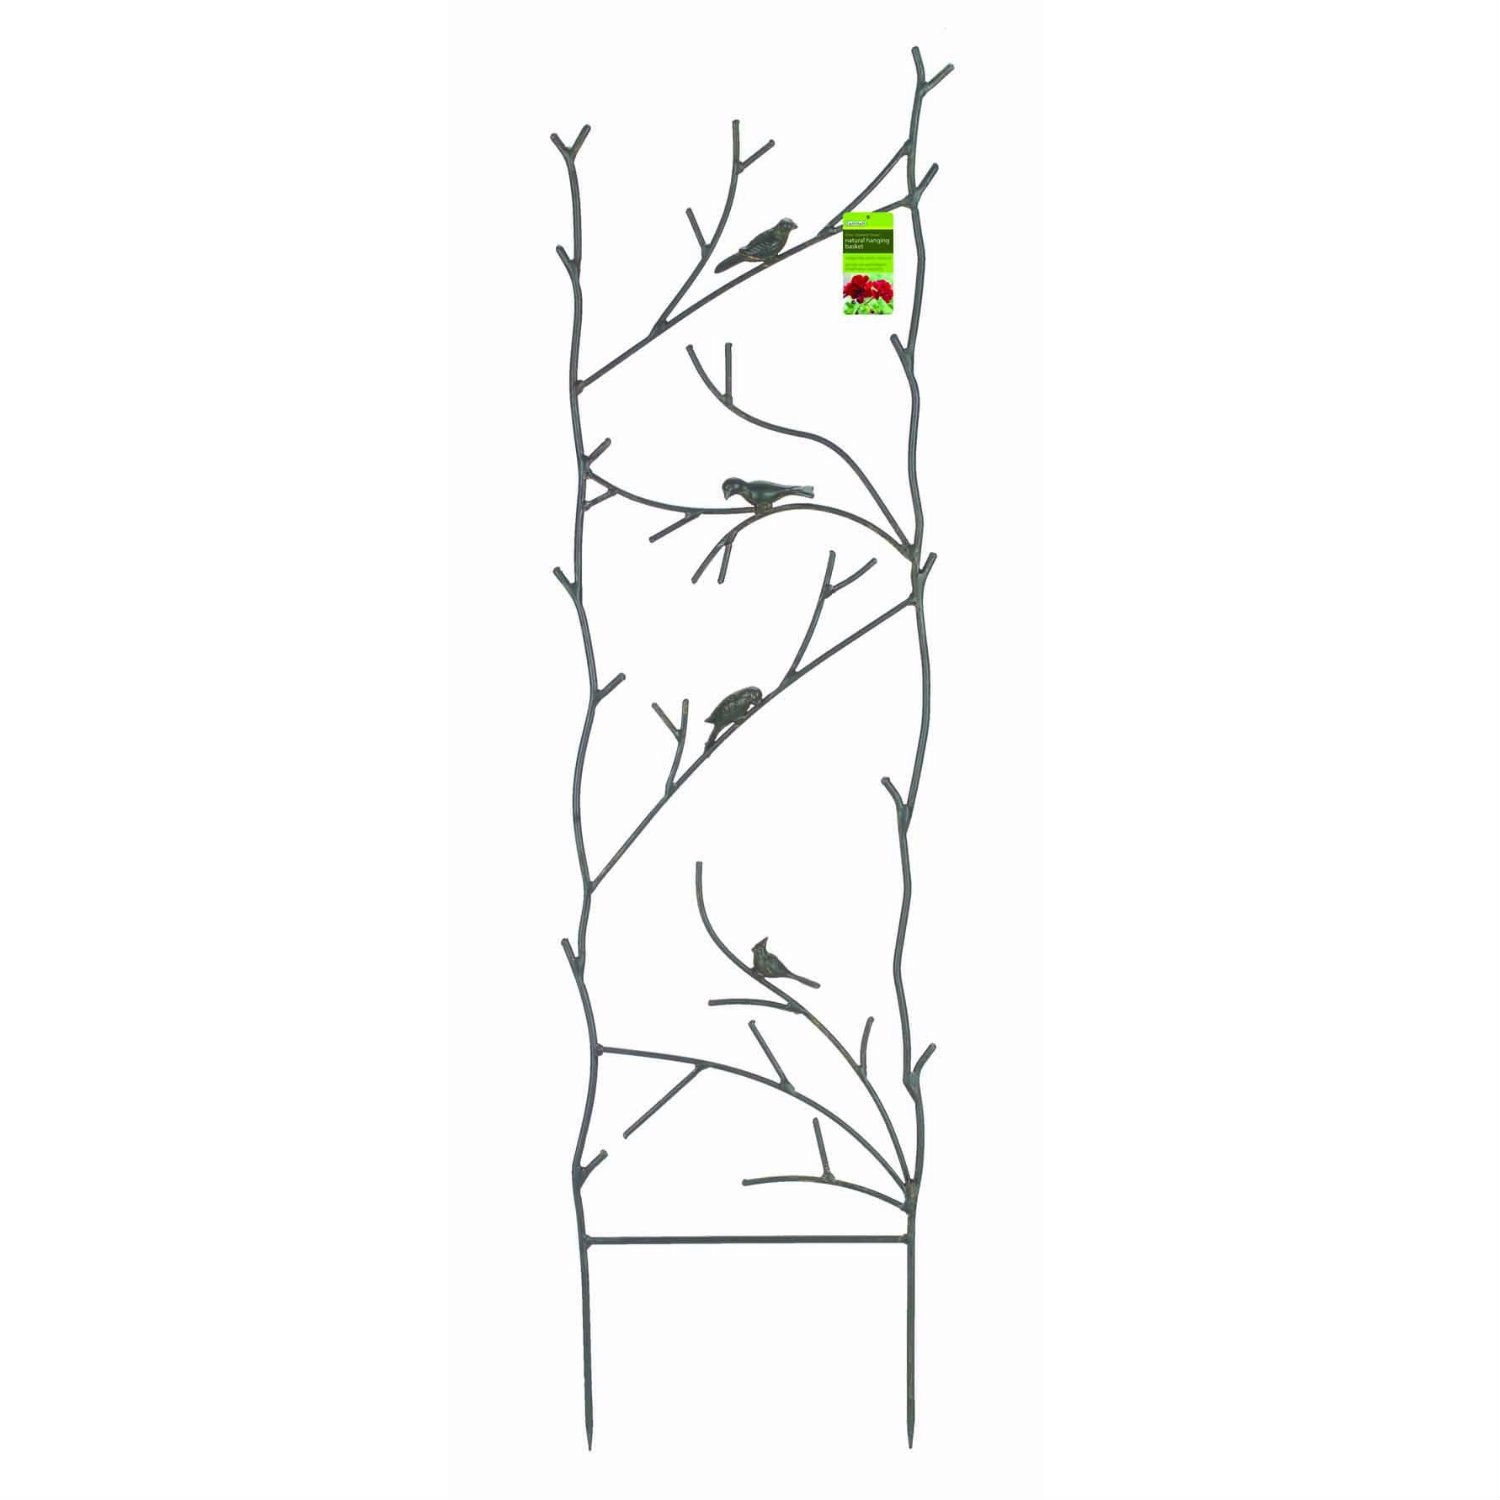 "4-Ft High Garden Trellis with Metal Birds Branch Design in Espresso, GBMT23511 :  This 4-Ft High Garden Trellis with Metal Birds Branch Design in Espresso adds an interesting feature to your garden wall, fence or screen. Delicate looking branches and fun little birds decorate the undulating design. Sturdy steel construction with powder-coated polyester epoxy finish. Espresso color. Perfect for long-stemmed or climbing plants such as roses, sweet peas and clematis. Measures: 48"" tall x 14"" wide."